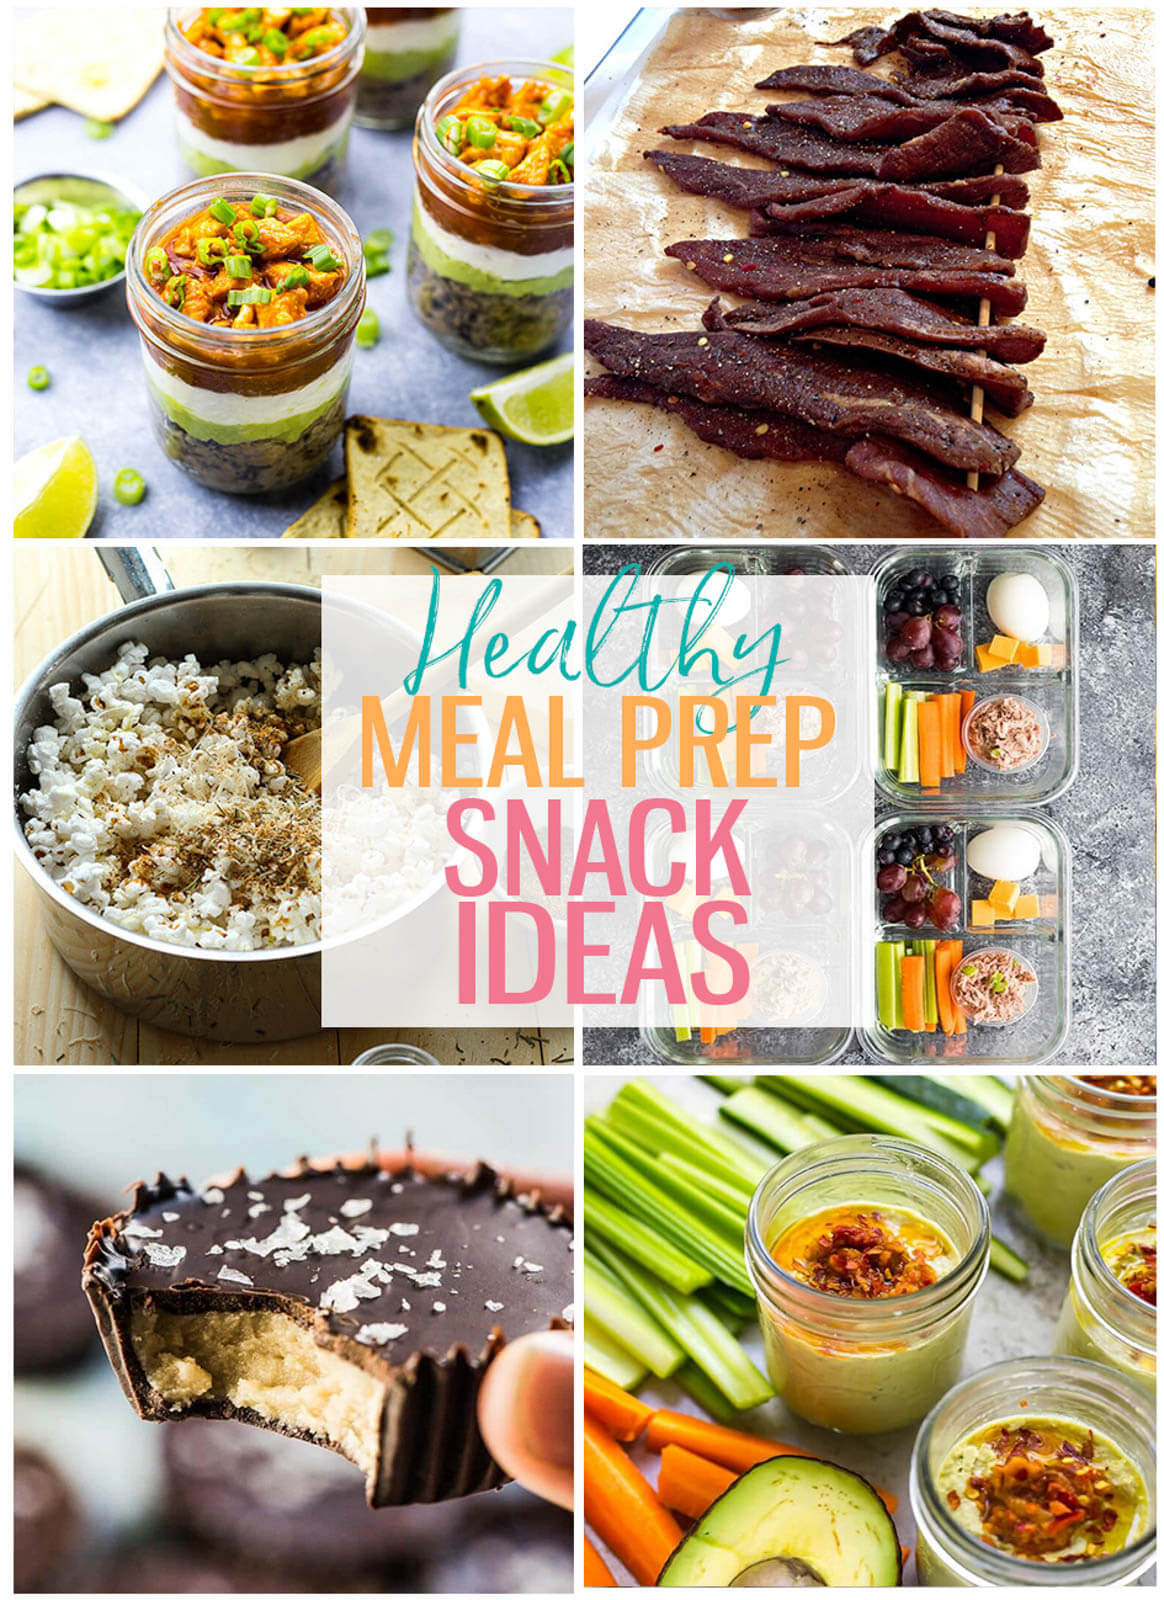 Healthy Snacks For Work  18 Meal Prep Healthy Snacks for Work The Girl on Bloor